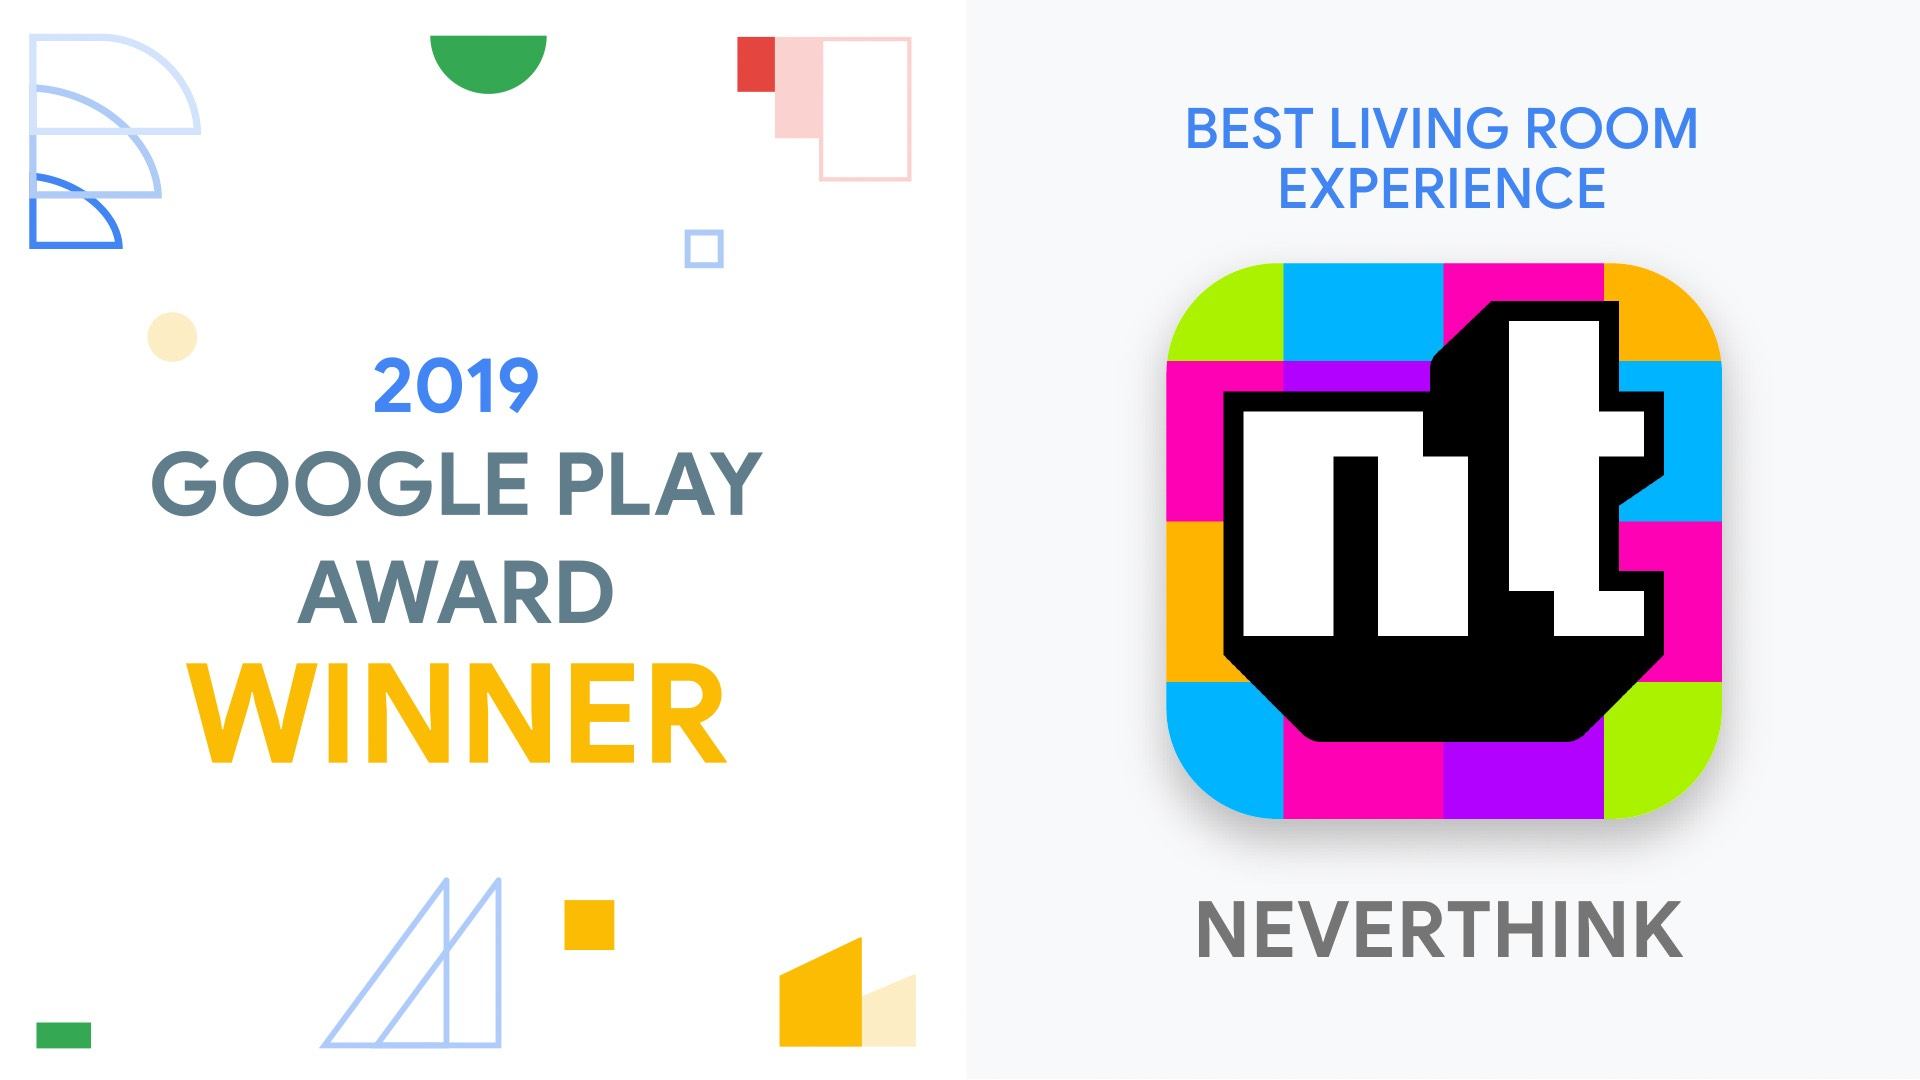 Neverthink selected as winner in the 2019 Google Play Awards